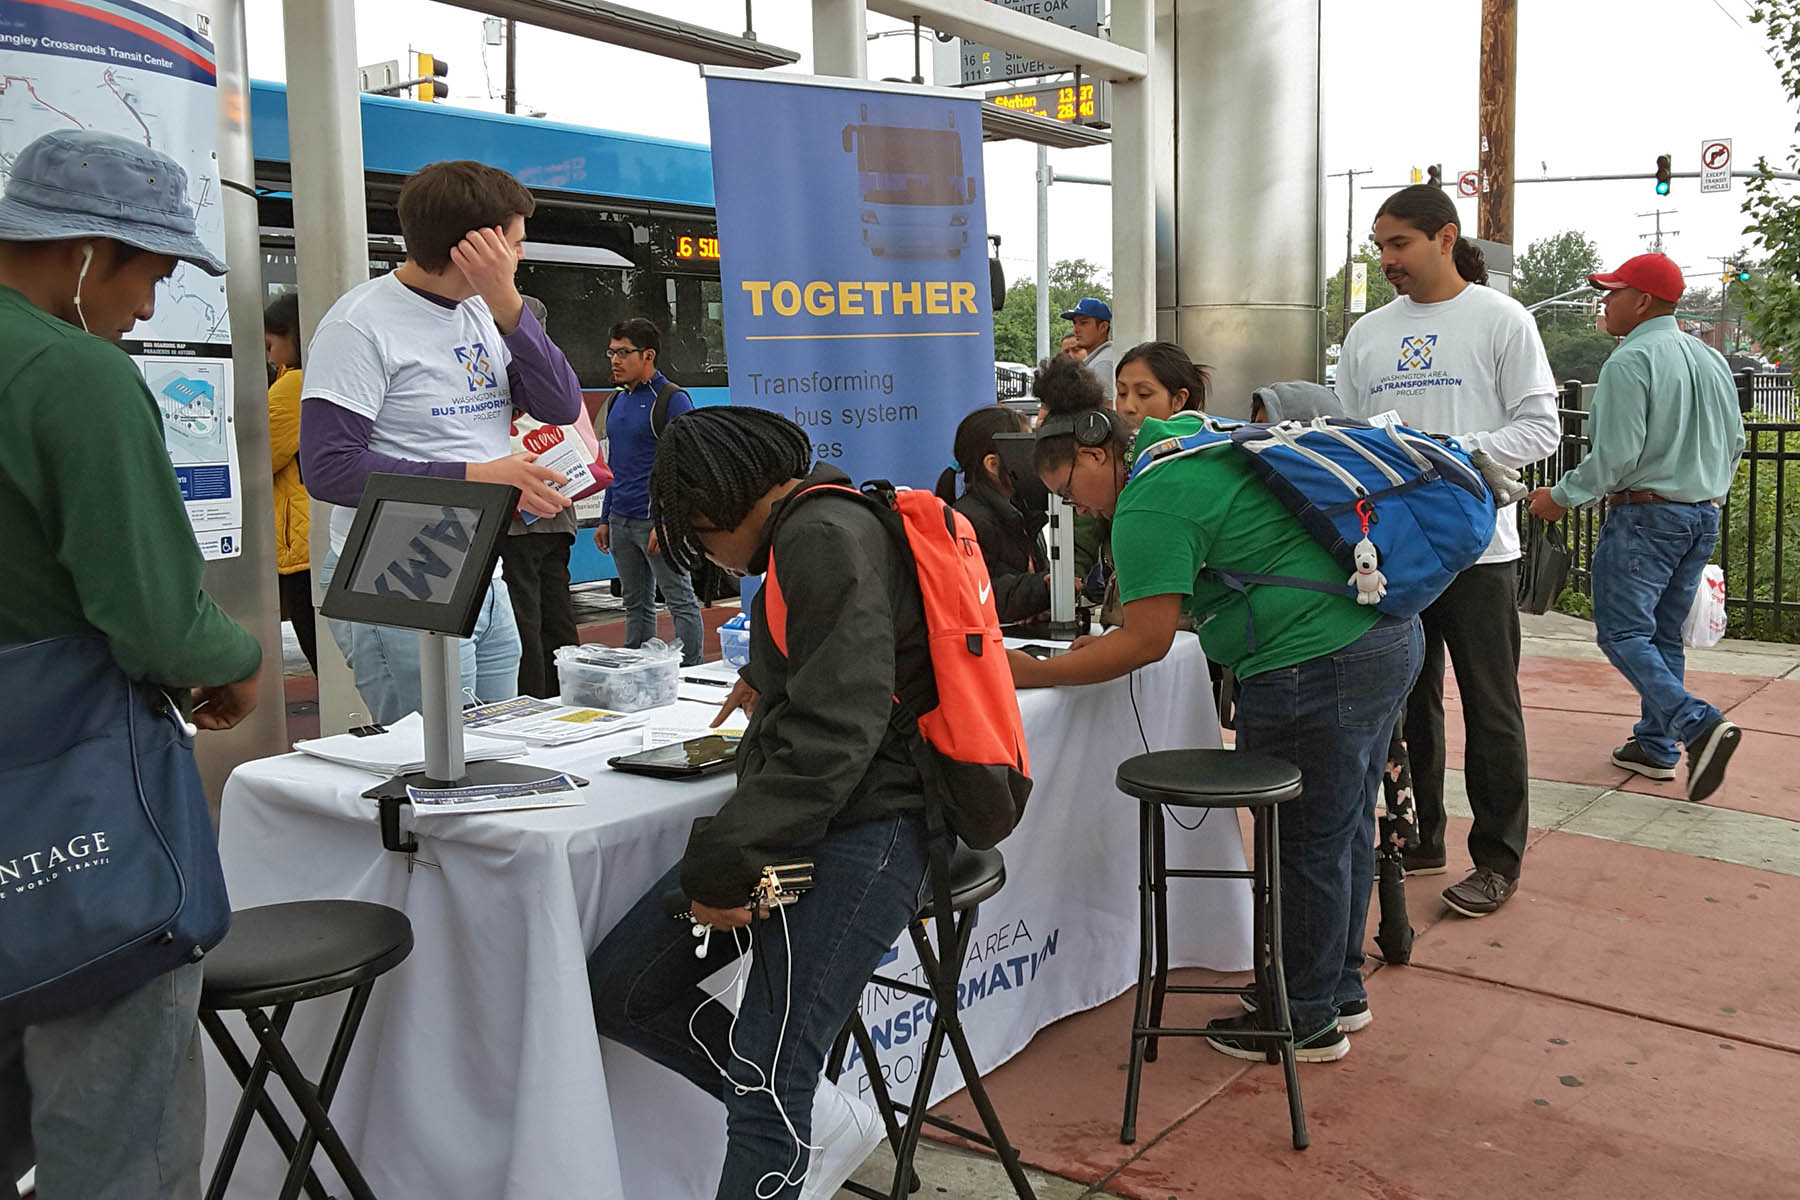 People at the Takoma Langley Crossroads Transit Center Event